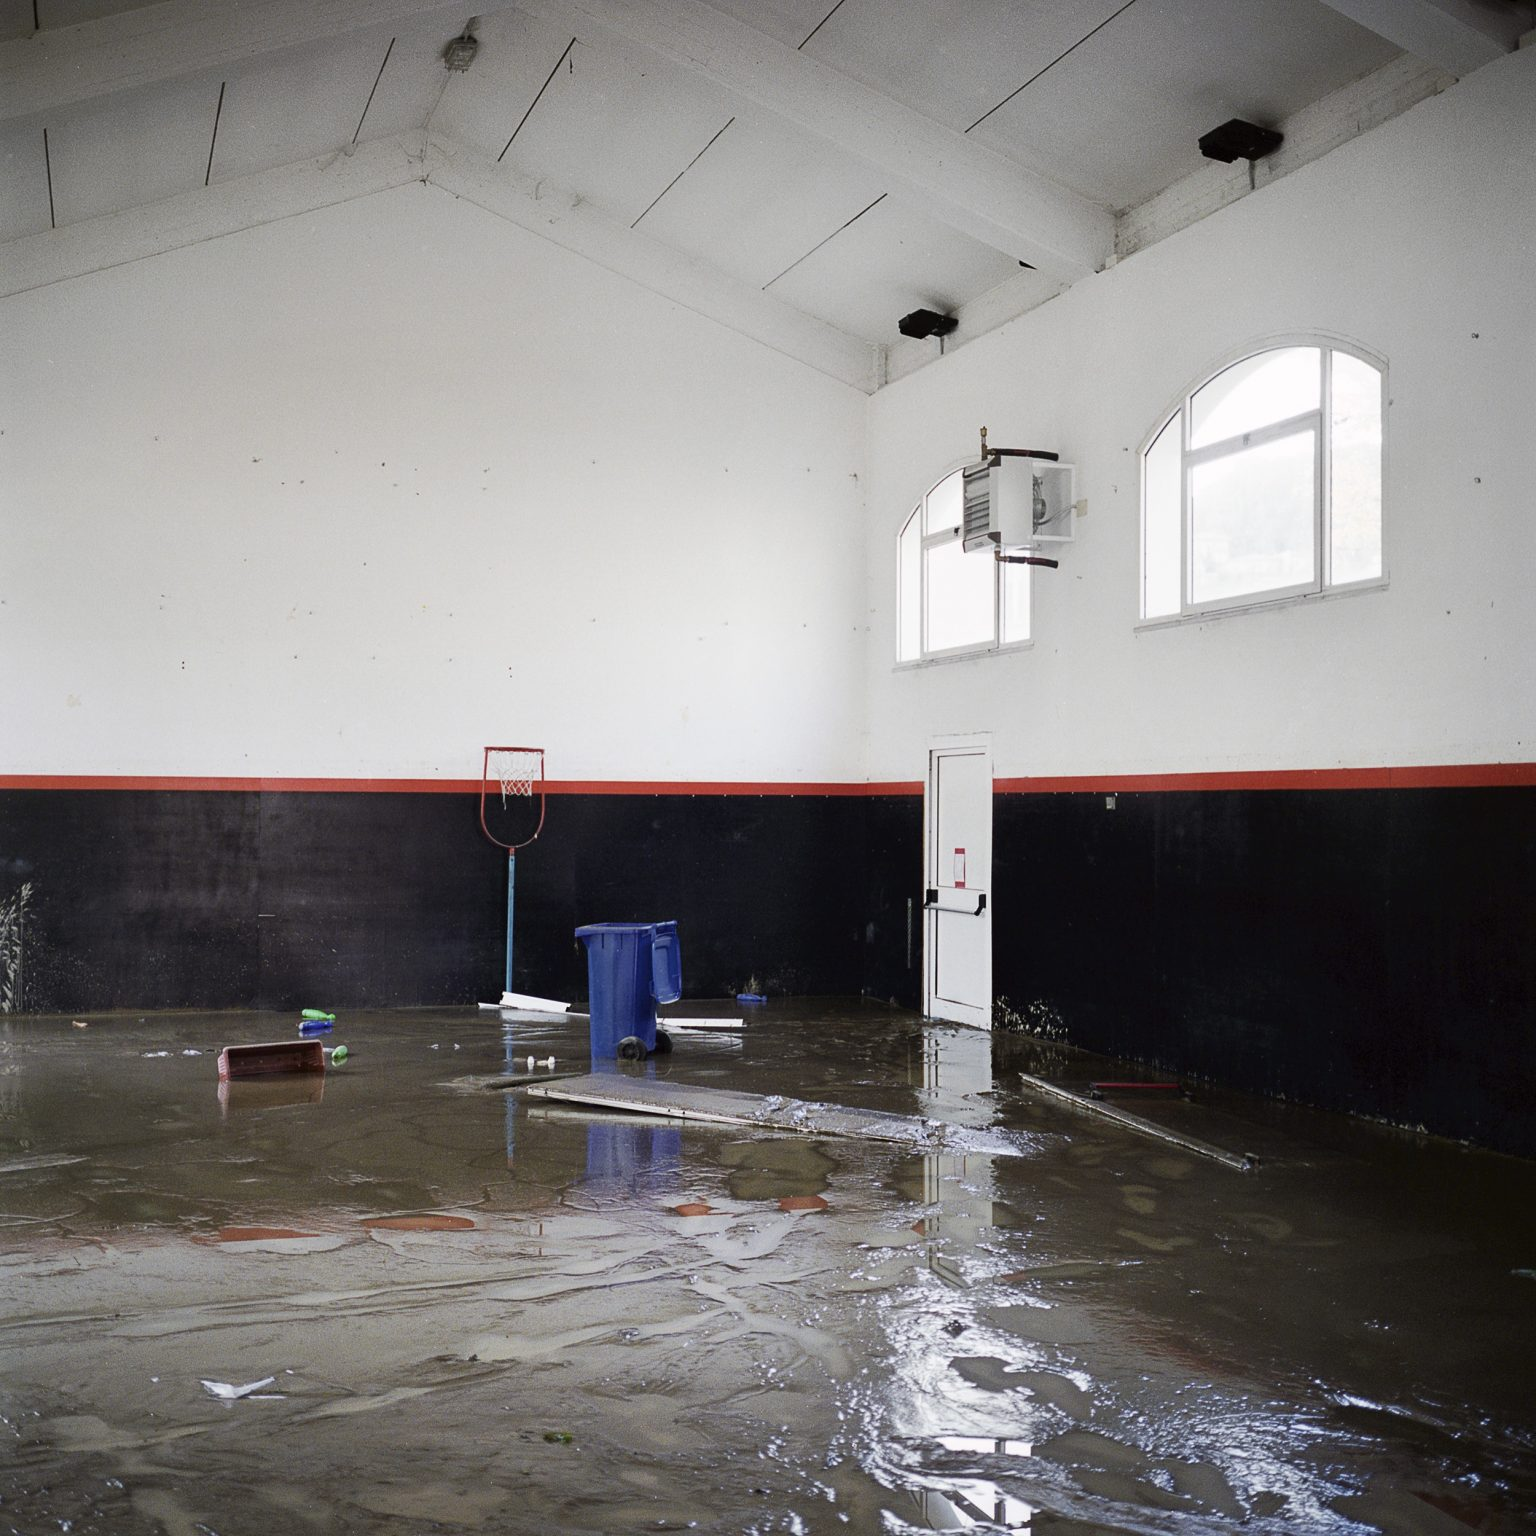 Aulla, October 2011. The day after the flood that hit the town due to the Magra river. The flooding caused 2 deaths and much damages to the buildings and economic activities. Inside the gym of a school.